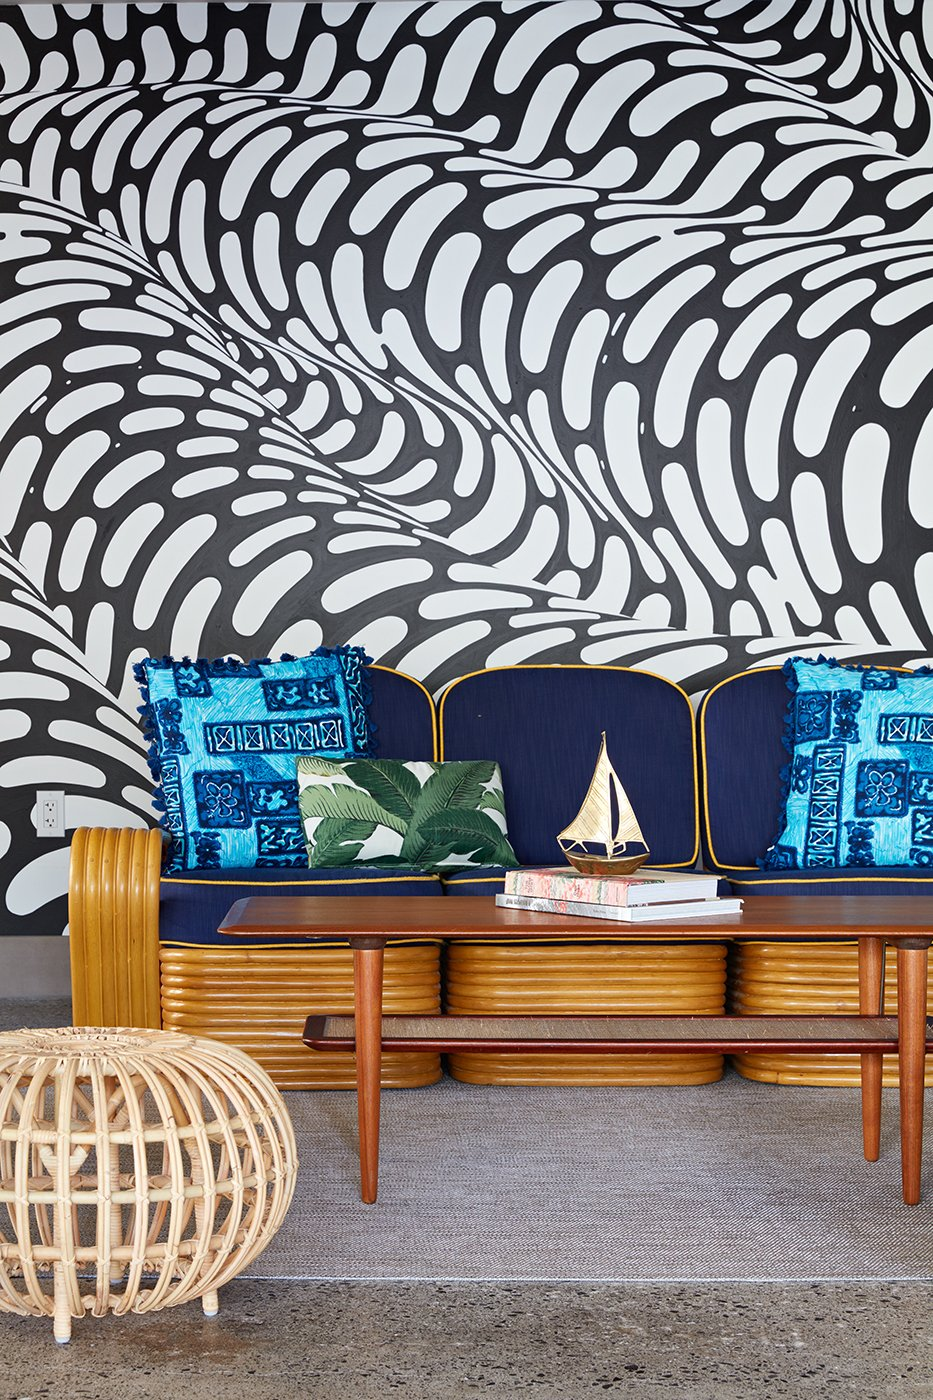 """Living Room, Sofa, Ottomans, and Coffee Tables In the covered cabana area by the pool, a hand-painted mural by Brendan """"The Blob"""" Monroe creates a funky backdrop that's inspired by the flow of water. Local artist, illustrator, and curator Jasper Wong co-curated the mural artwork found throughout the property.  The Surfjack Hotel & Swim Club from This Surf-Inspired Hotel Celebrates Waikiki's Creative Spirit and its Midcentury Roots"""